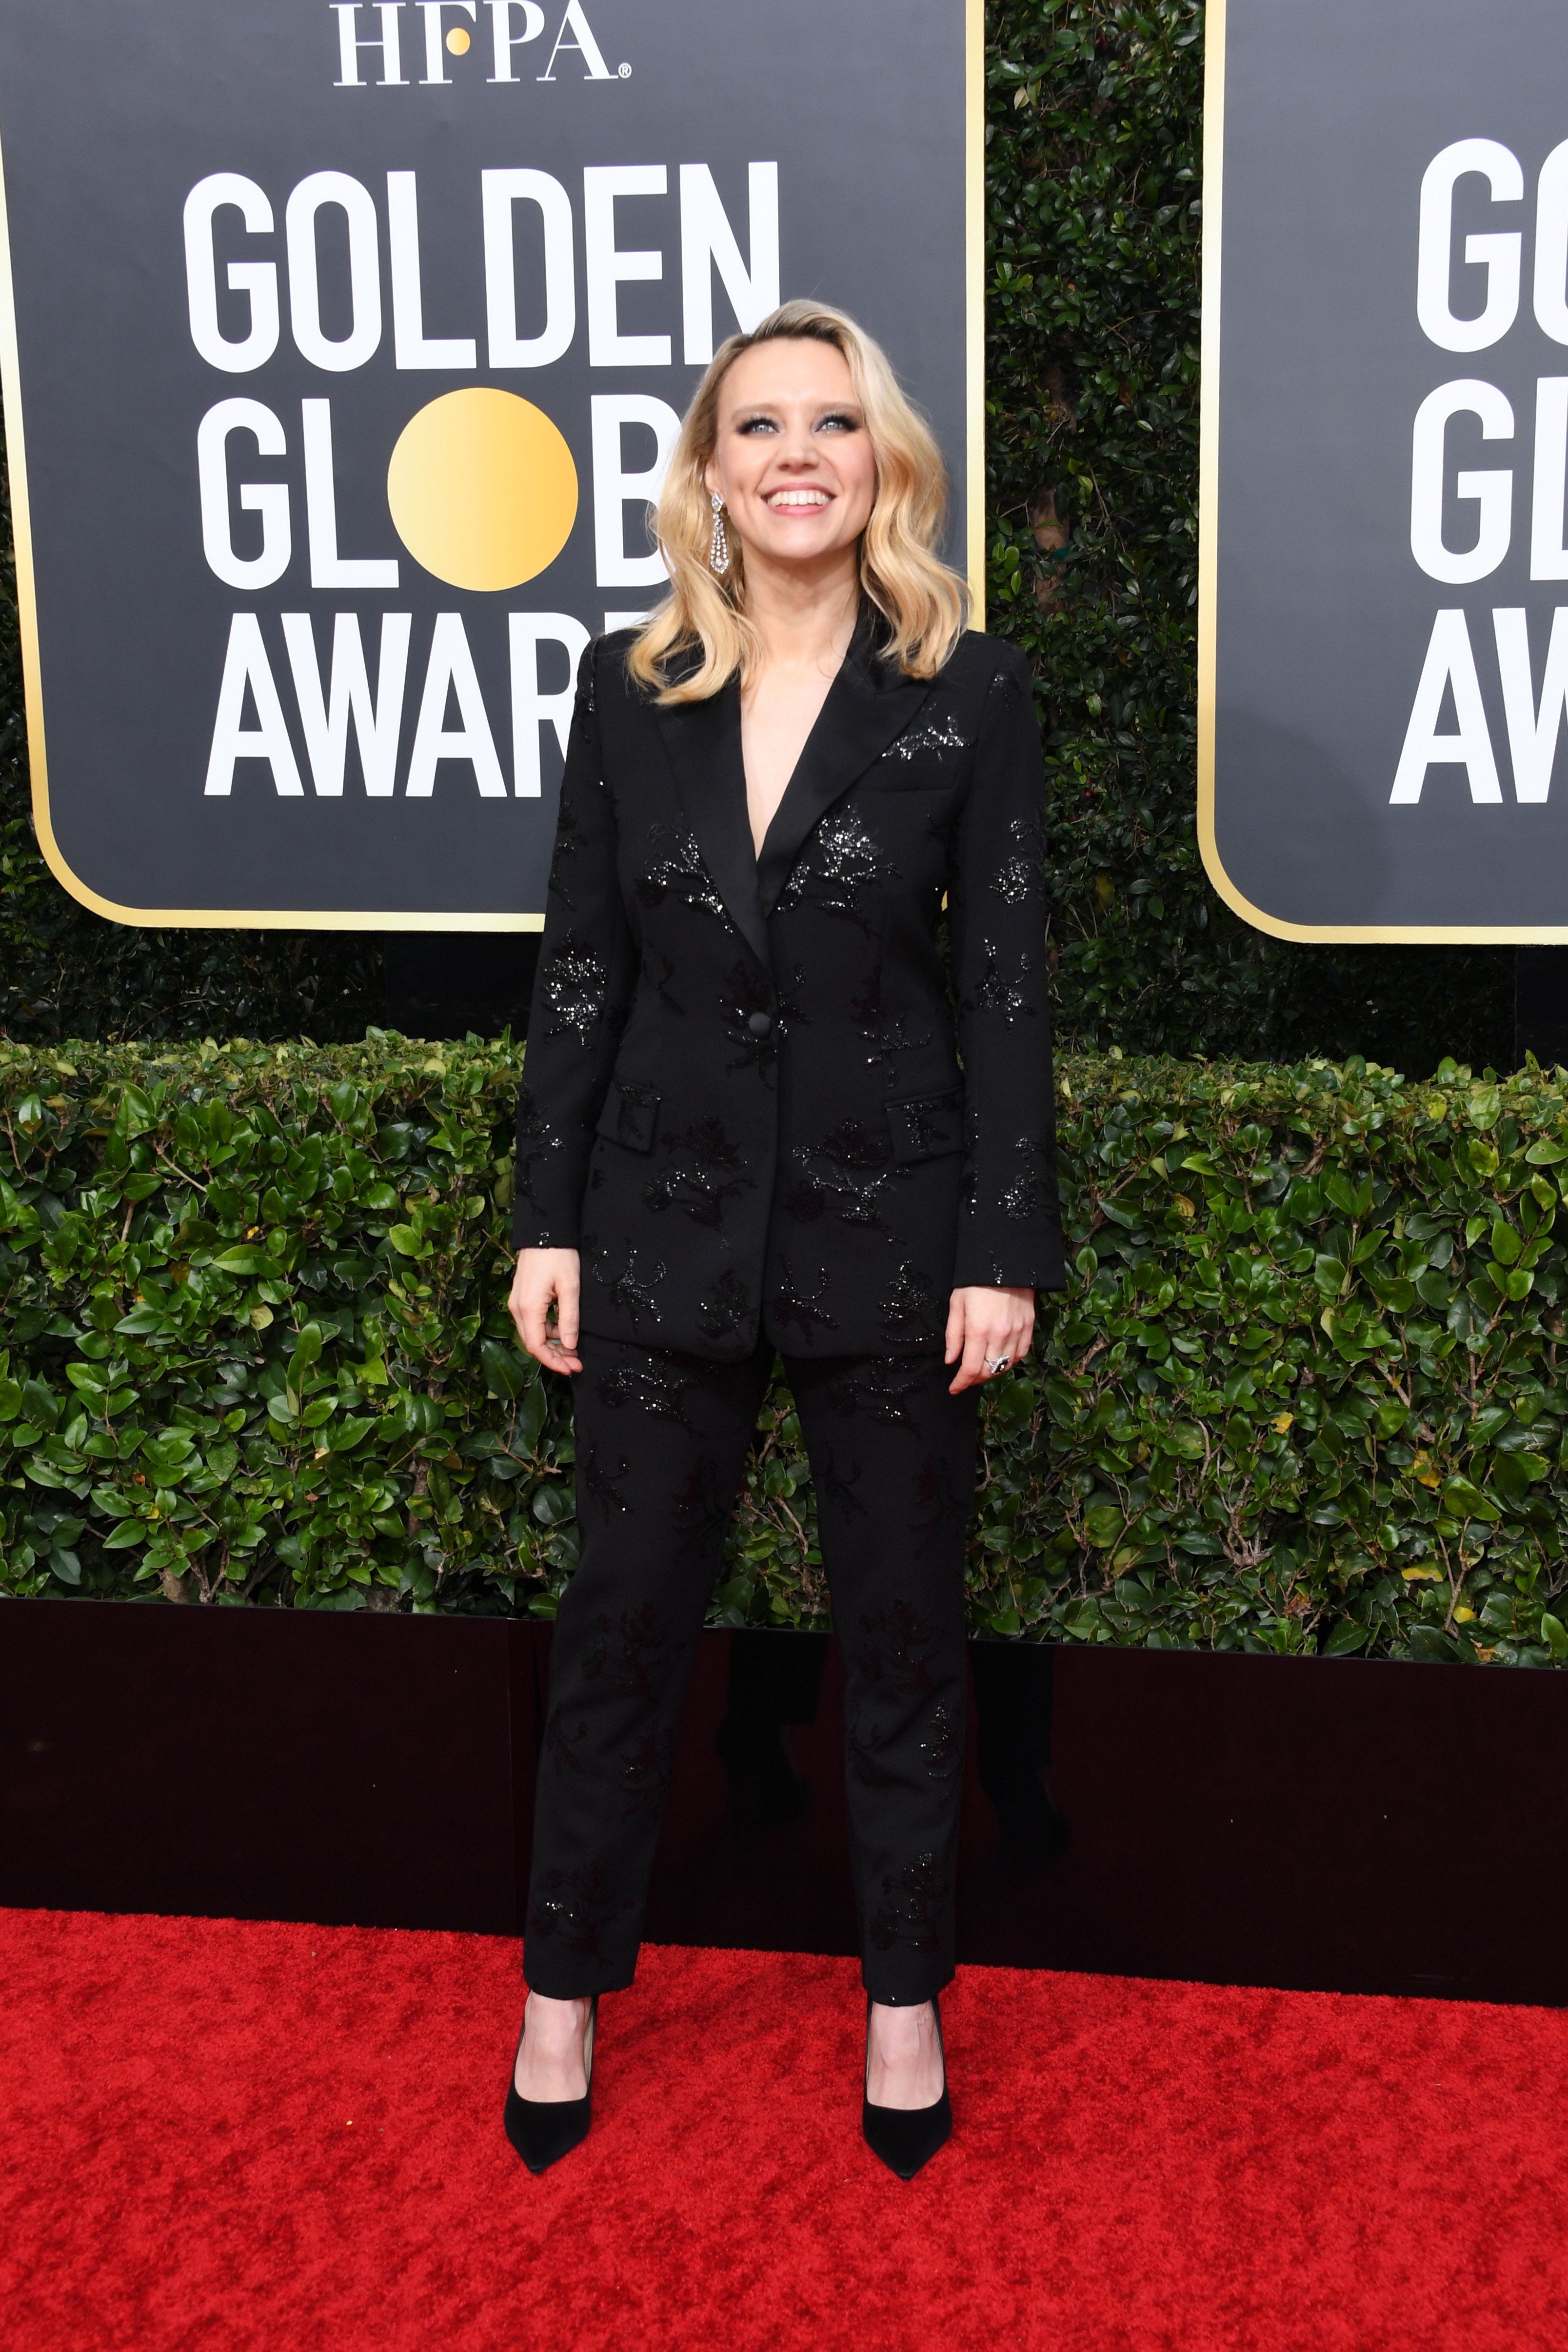 BEVERLY HILLS, CALIFORNIA - JANUARY 05: Kate McKinnon attends the 77th Annual Golden Globe Awards at The Beverly Hilton Hotel on January 05, 2020 in Beverly Hills, California. (Photo by Jon Kopaloff/Getty Images)